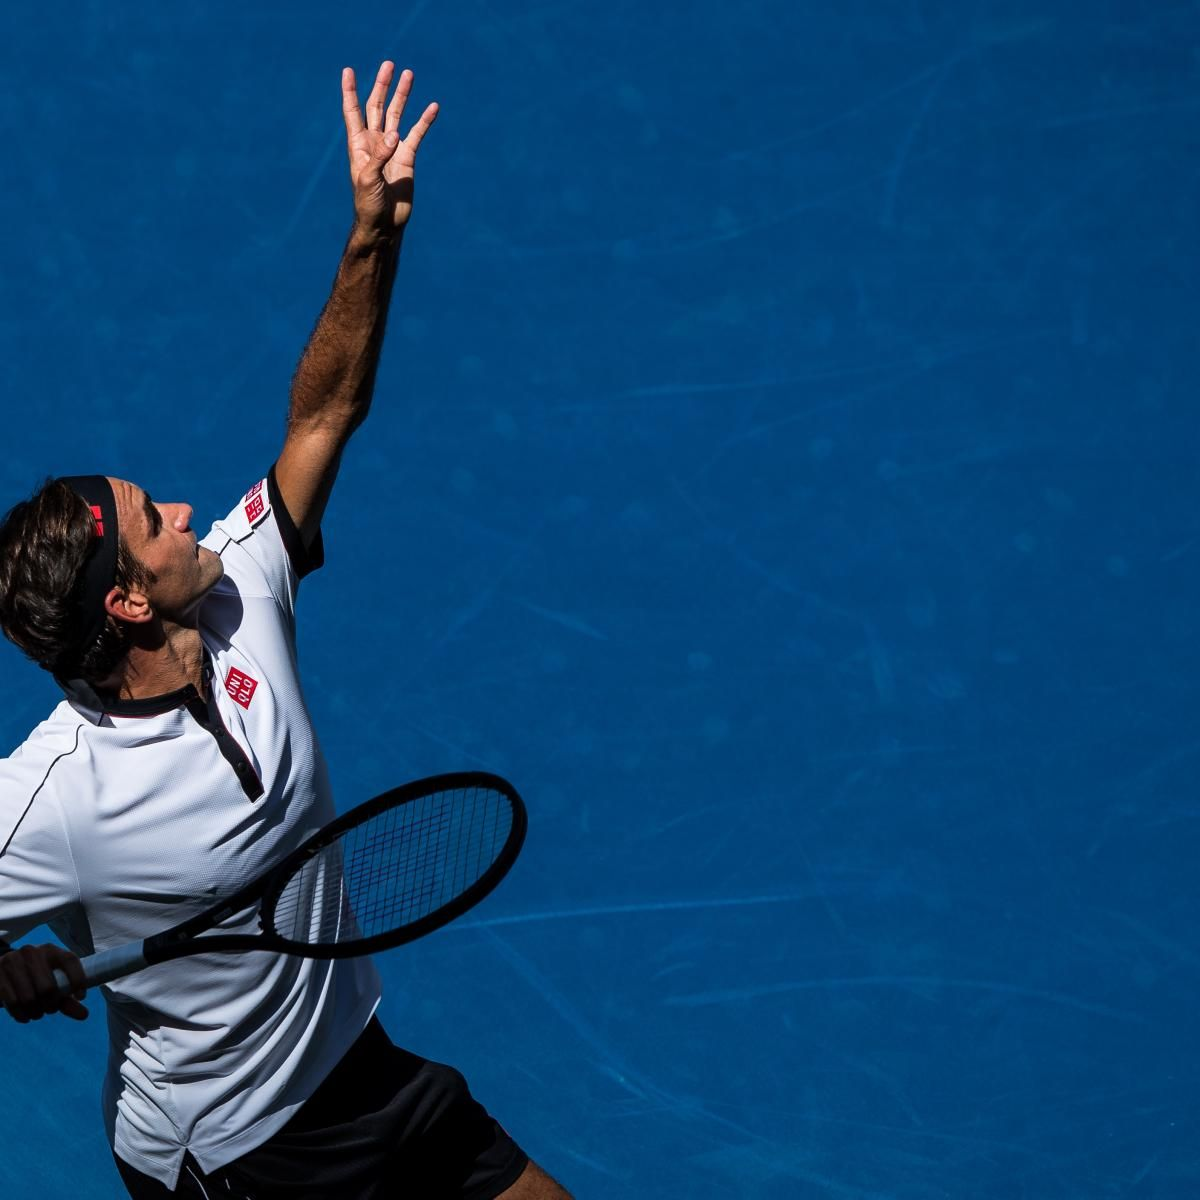 Roger Federer Sick And Tired Of Speculation Over Schedule Influence At Us Open With Images Roger Federer Rogers Sick